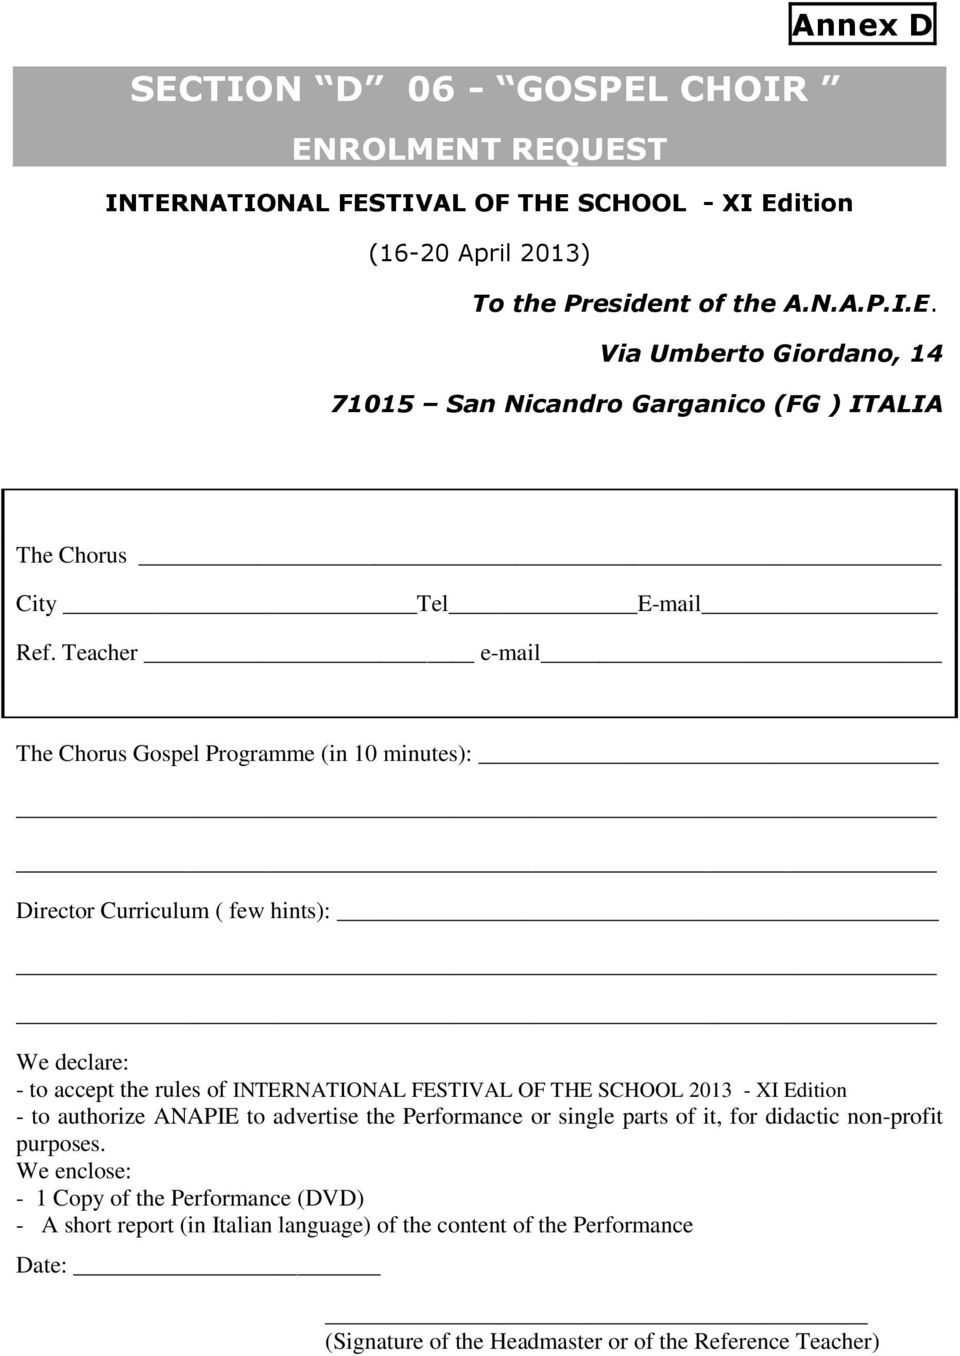 FESTIVAL OF THE SCHOOL 2013 - XI Edition - to authorize ANAPIE to advertise the Performance or single parts of it, for didactic non-profit